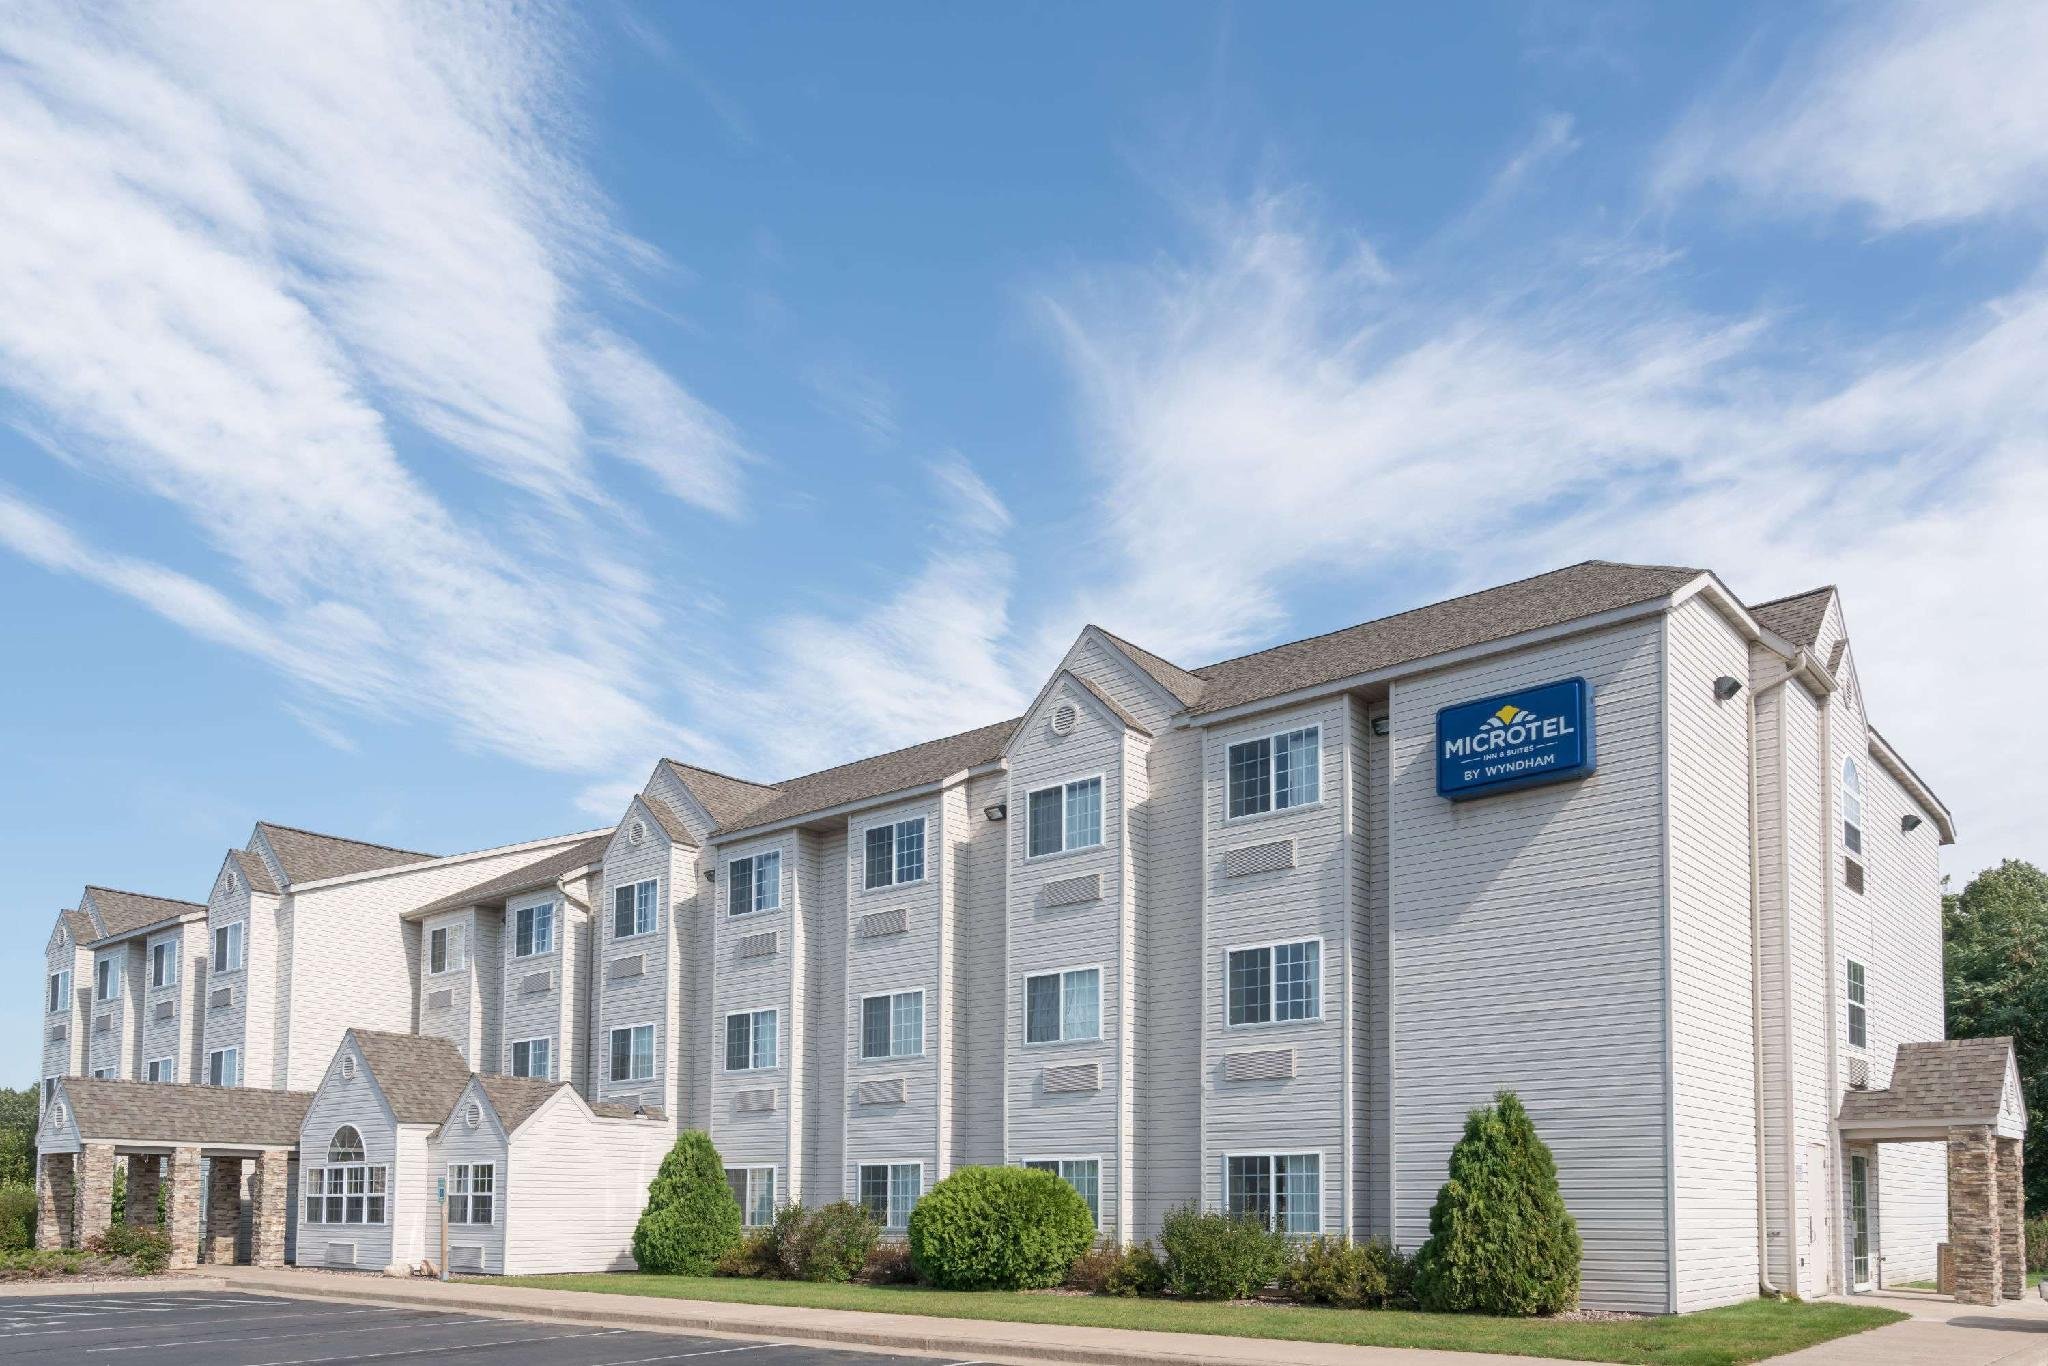 Microtel Inn And Suites By Wyndham Rice Lake